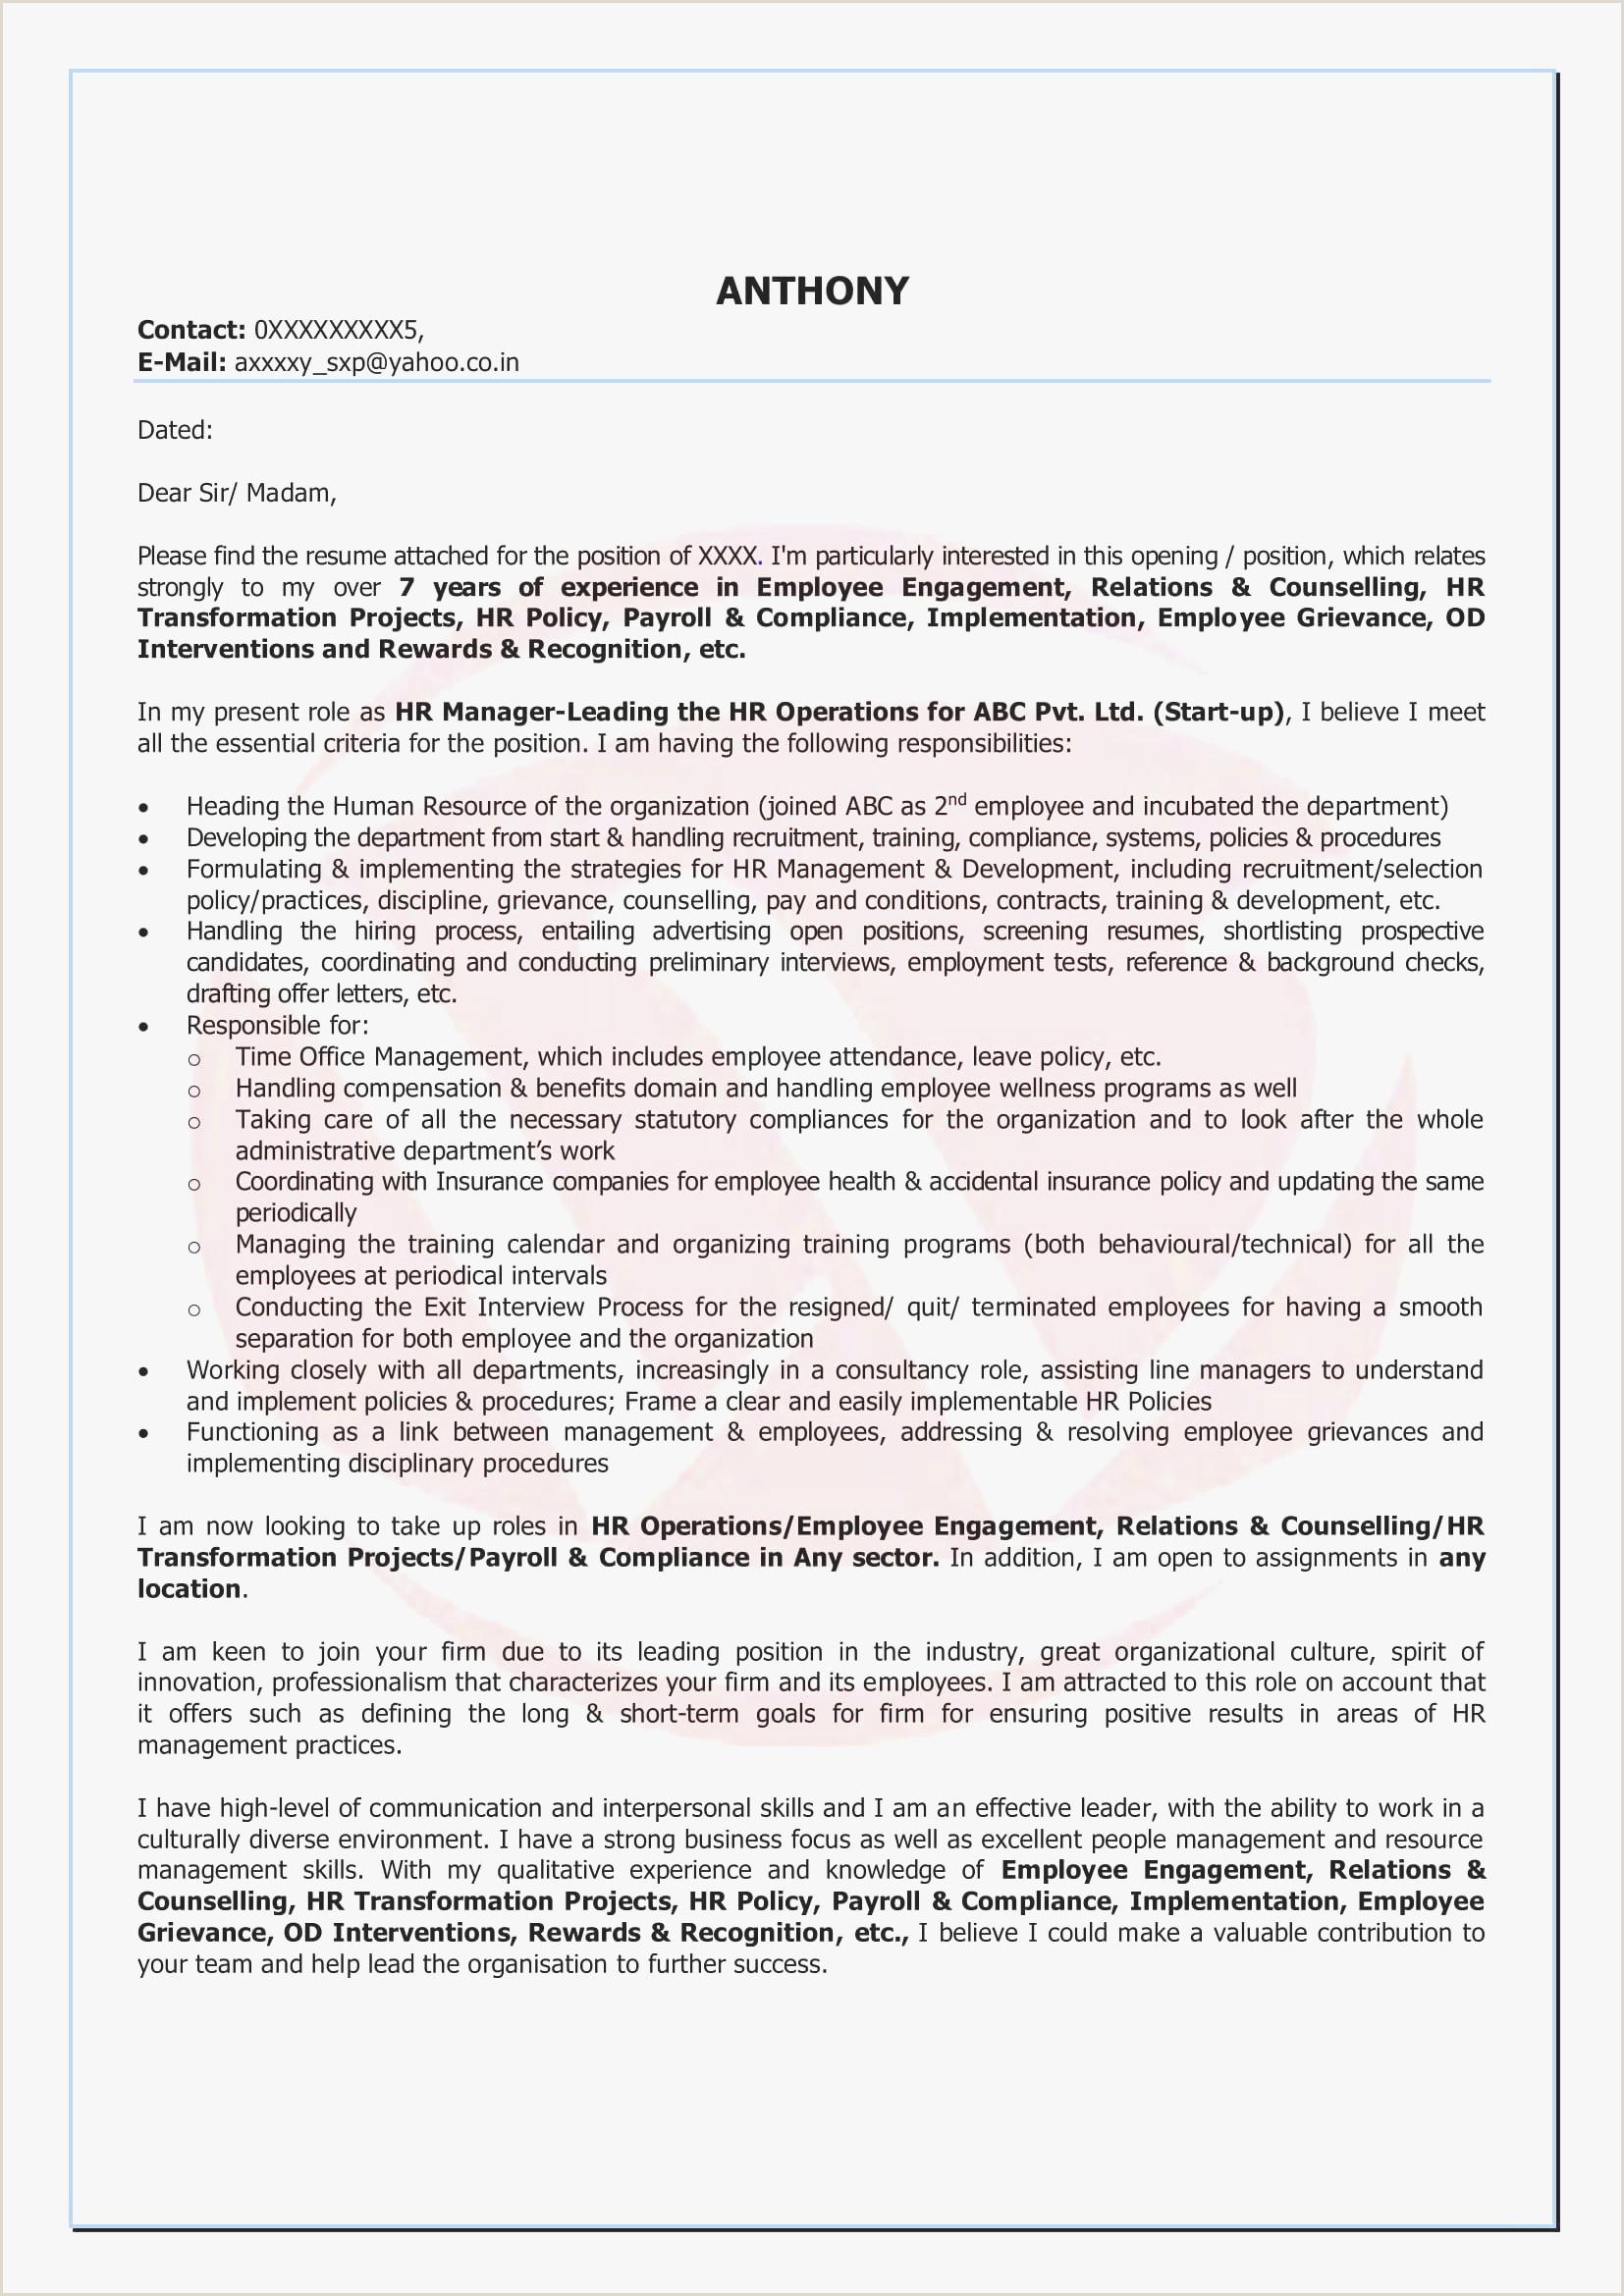 Professional Cv format for Network Engineer 10 Cover Letter Examples software Engineer